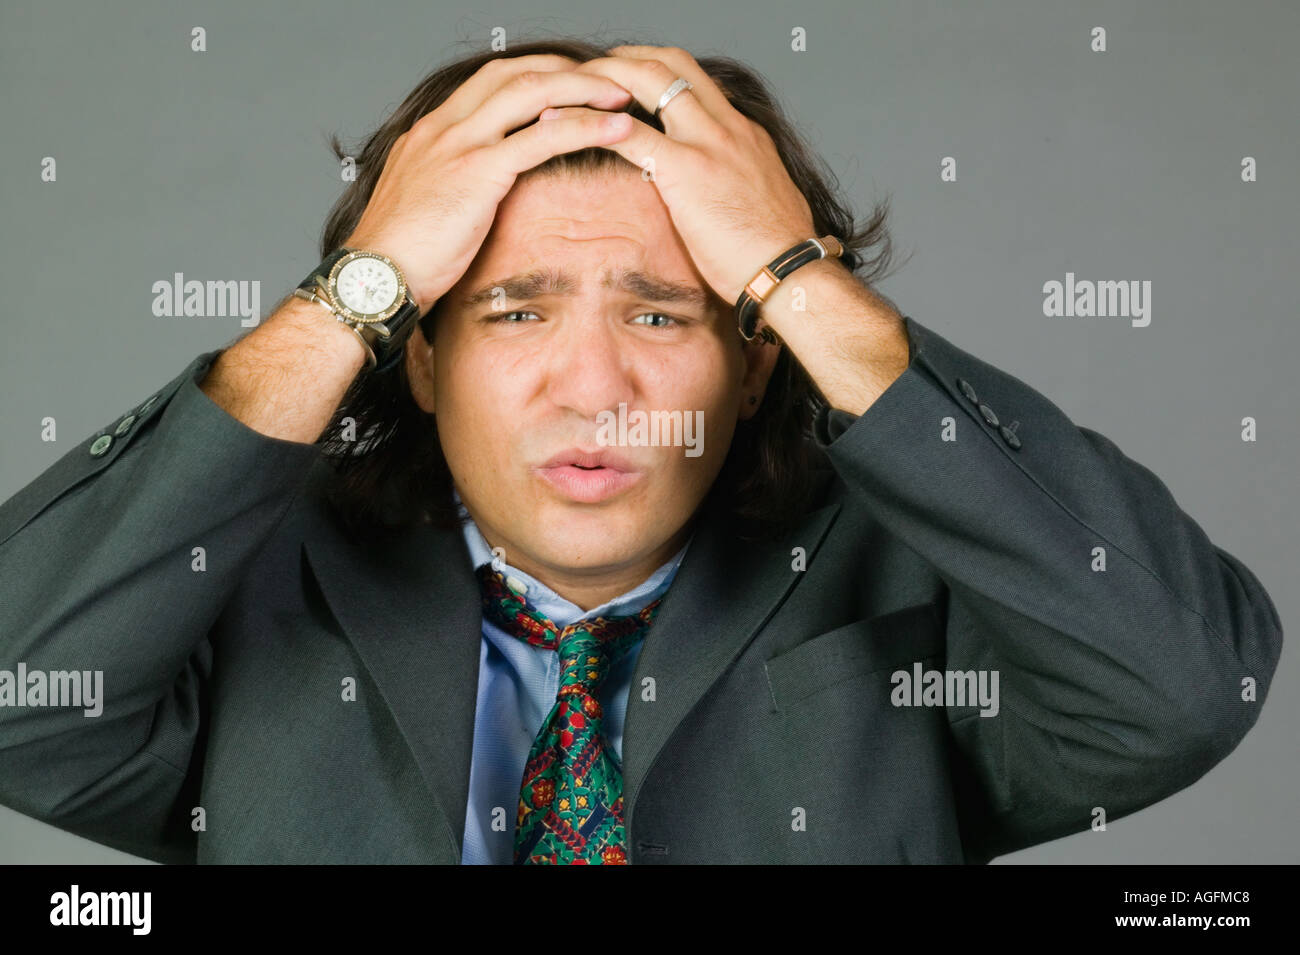 Young Latino businessman exasperated like he forgot something - Stock Image